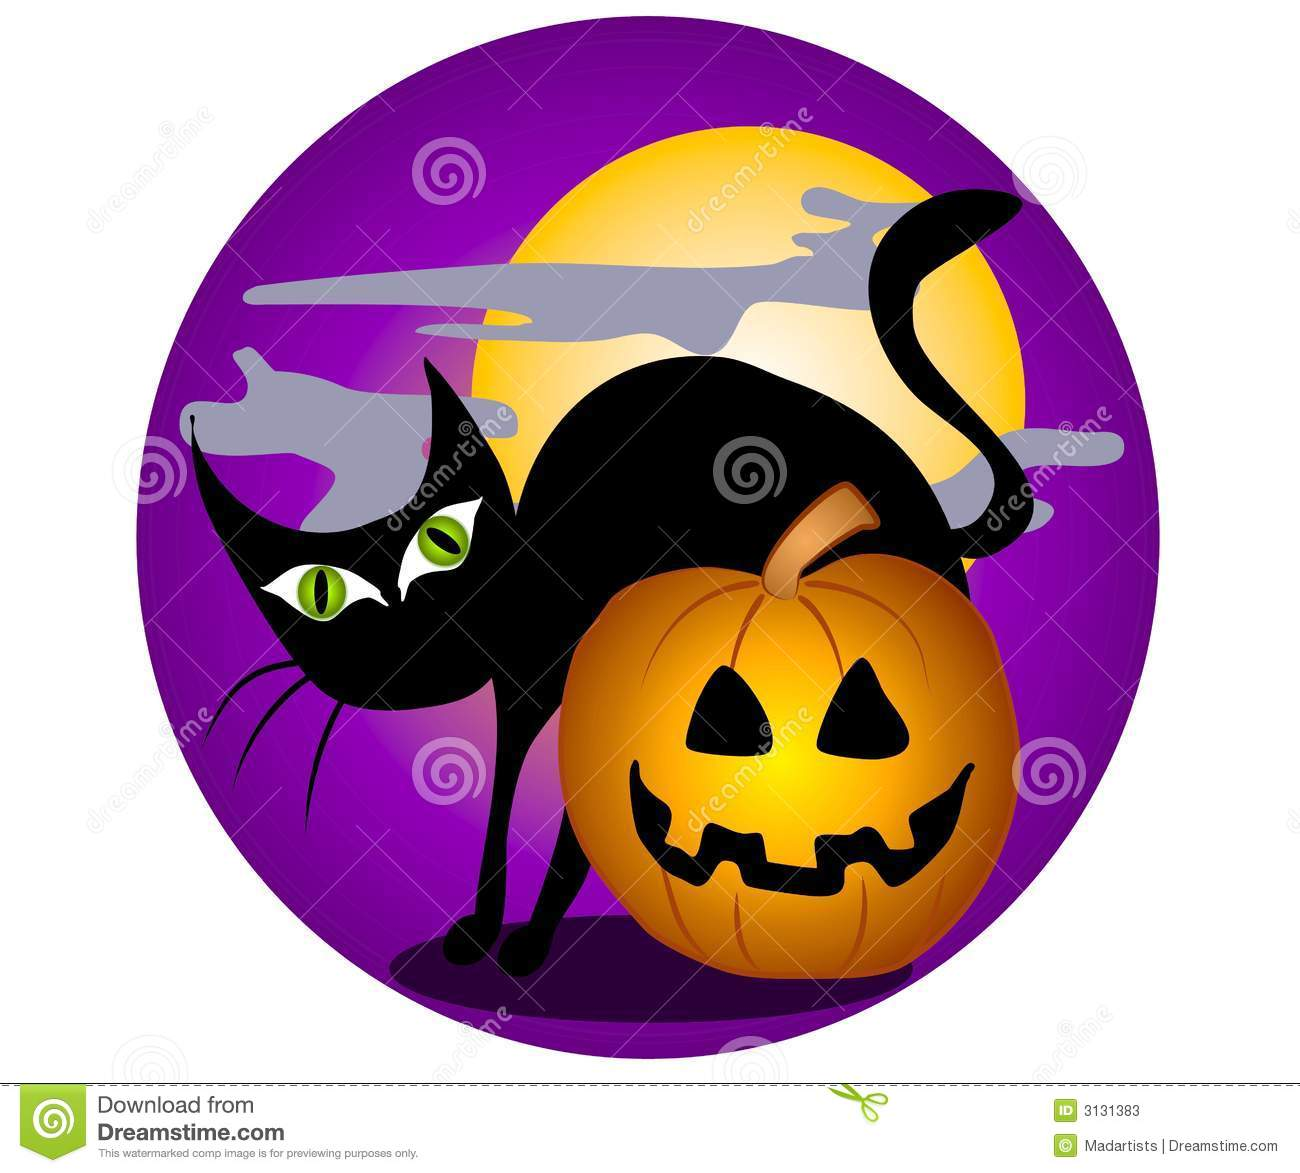 clip art illustration of a black cat with big green eyes, back ...